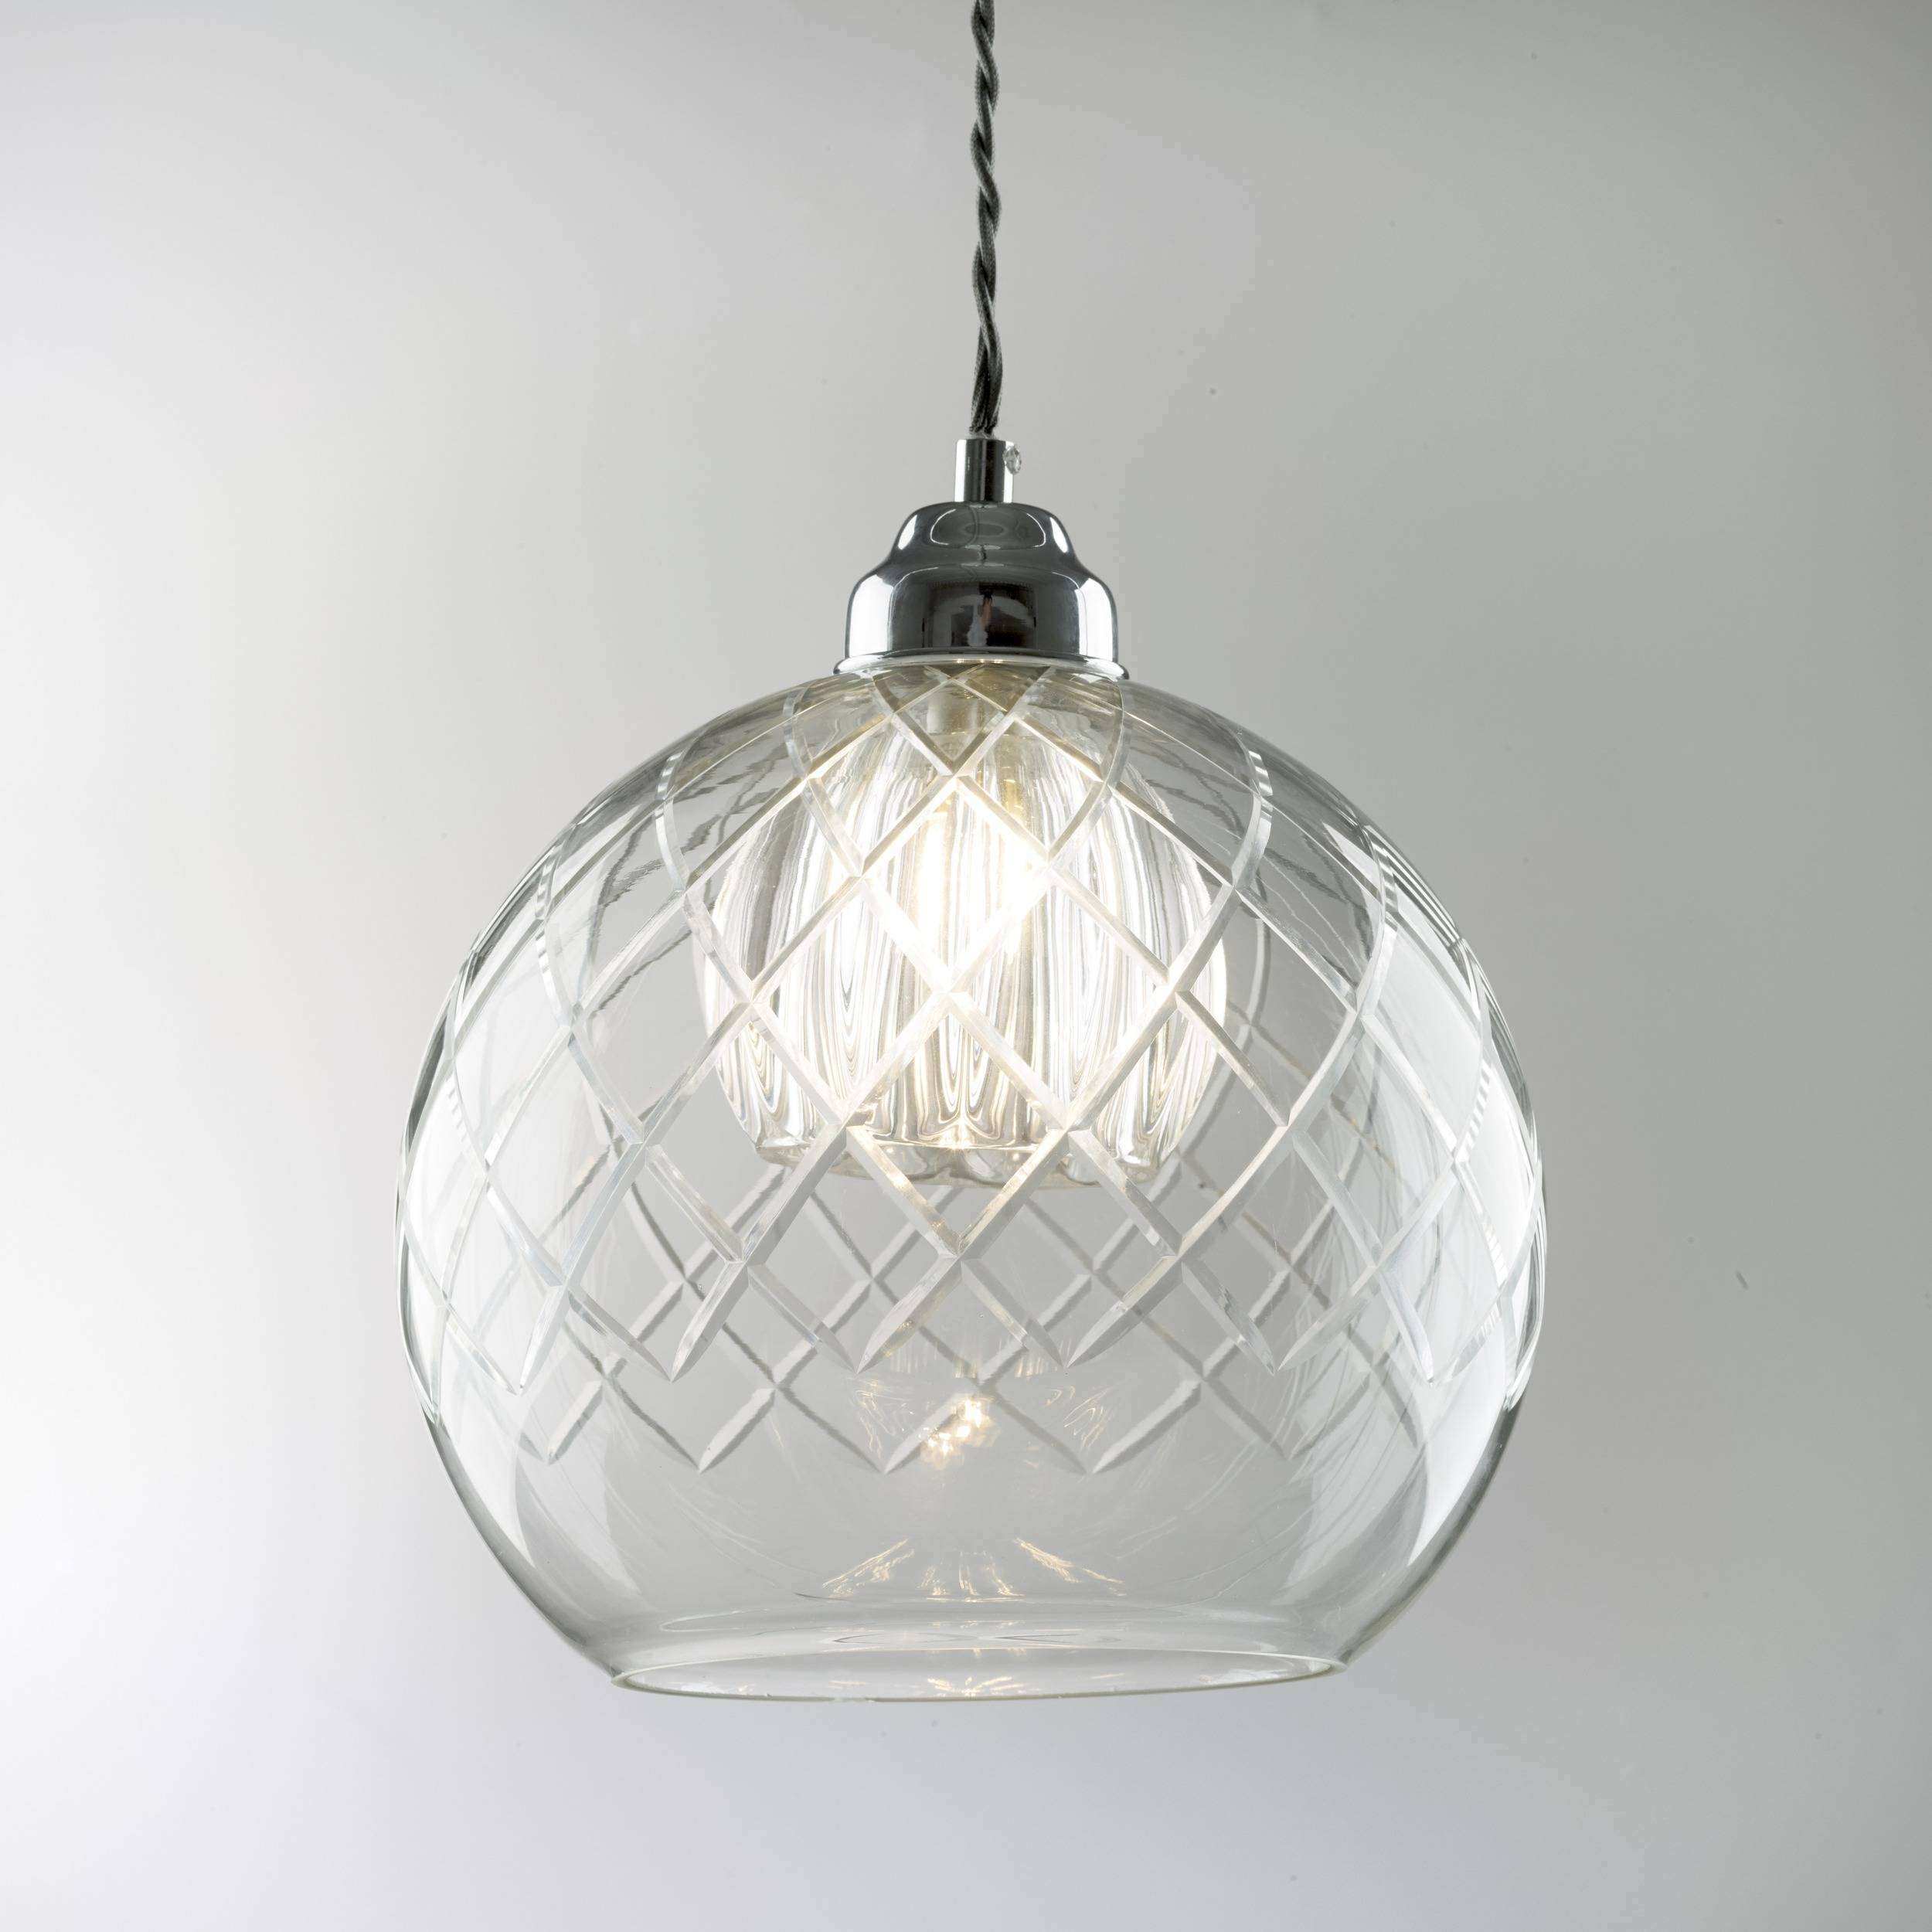 nickel pendant hounslow mini files style image lights glass pendantpolished ppn and light shocking of mercury